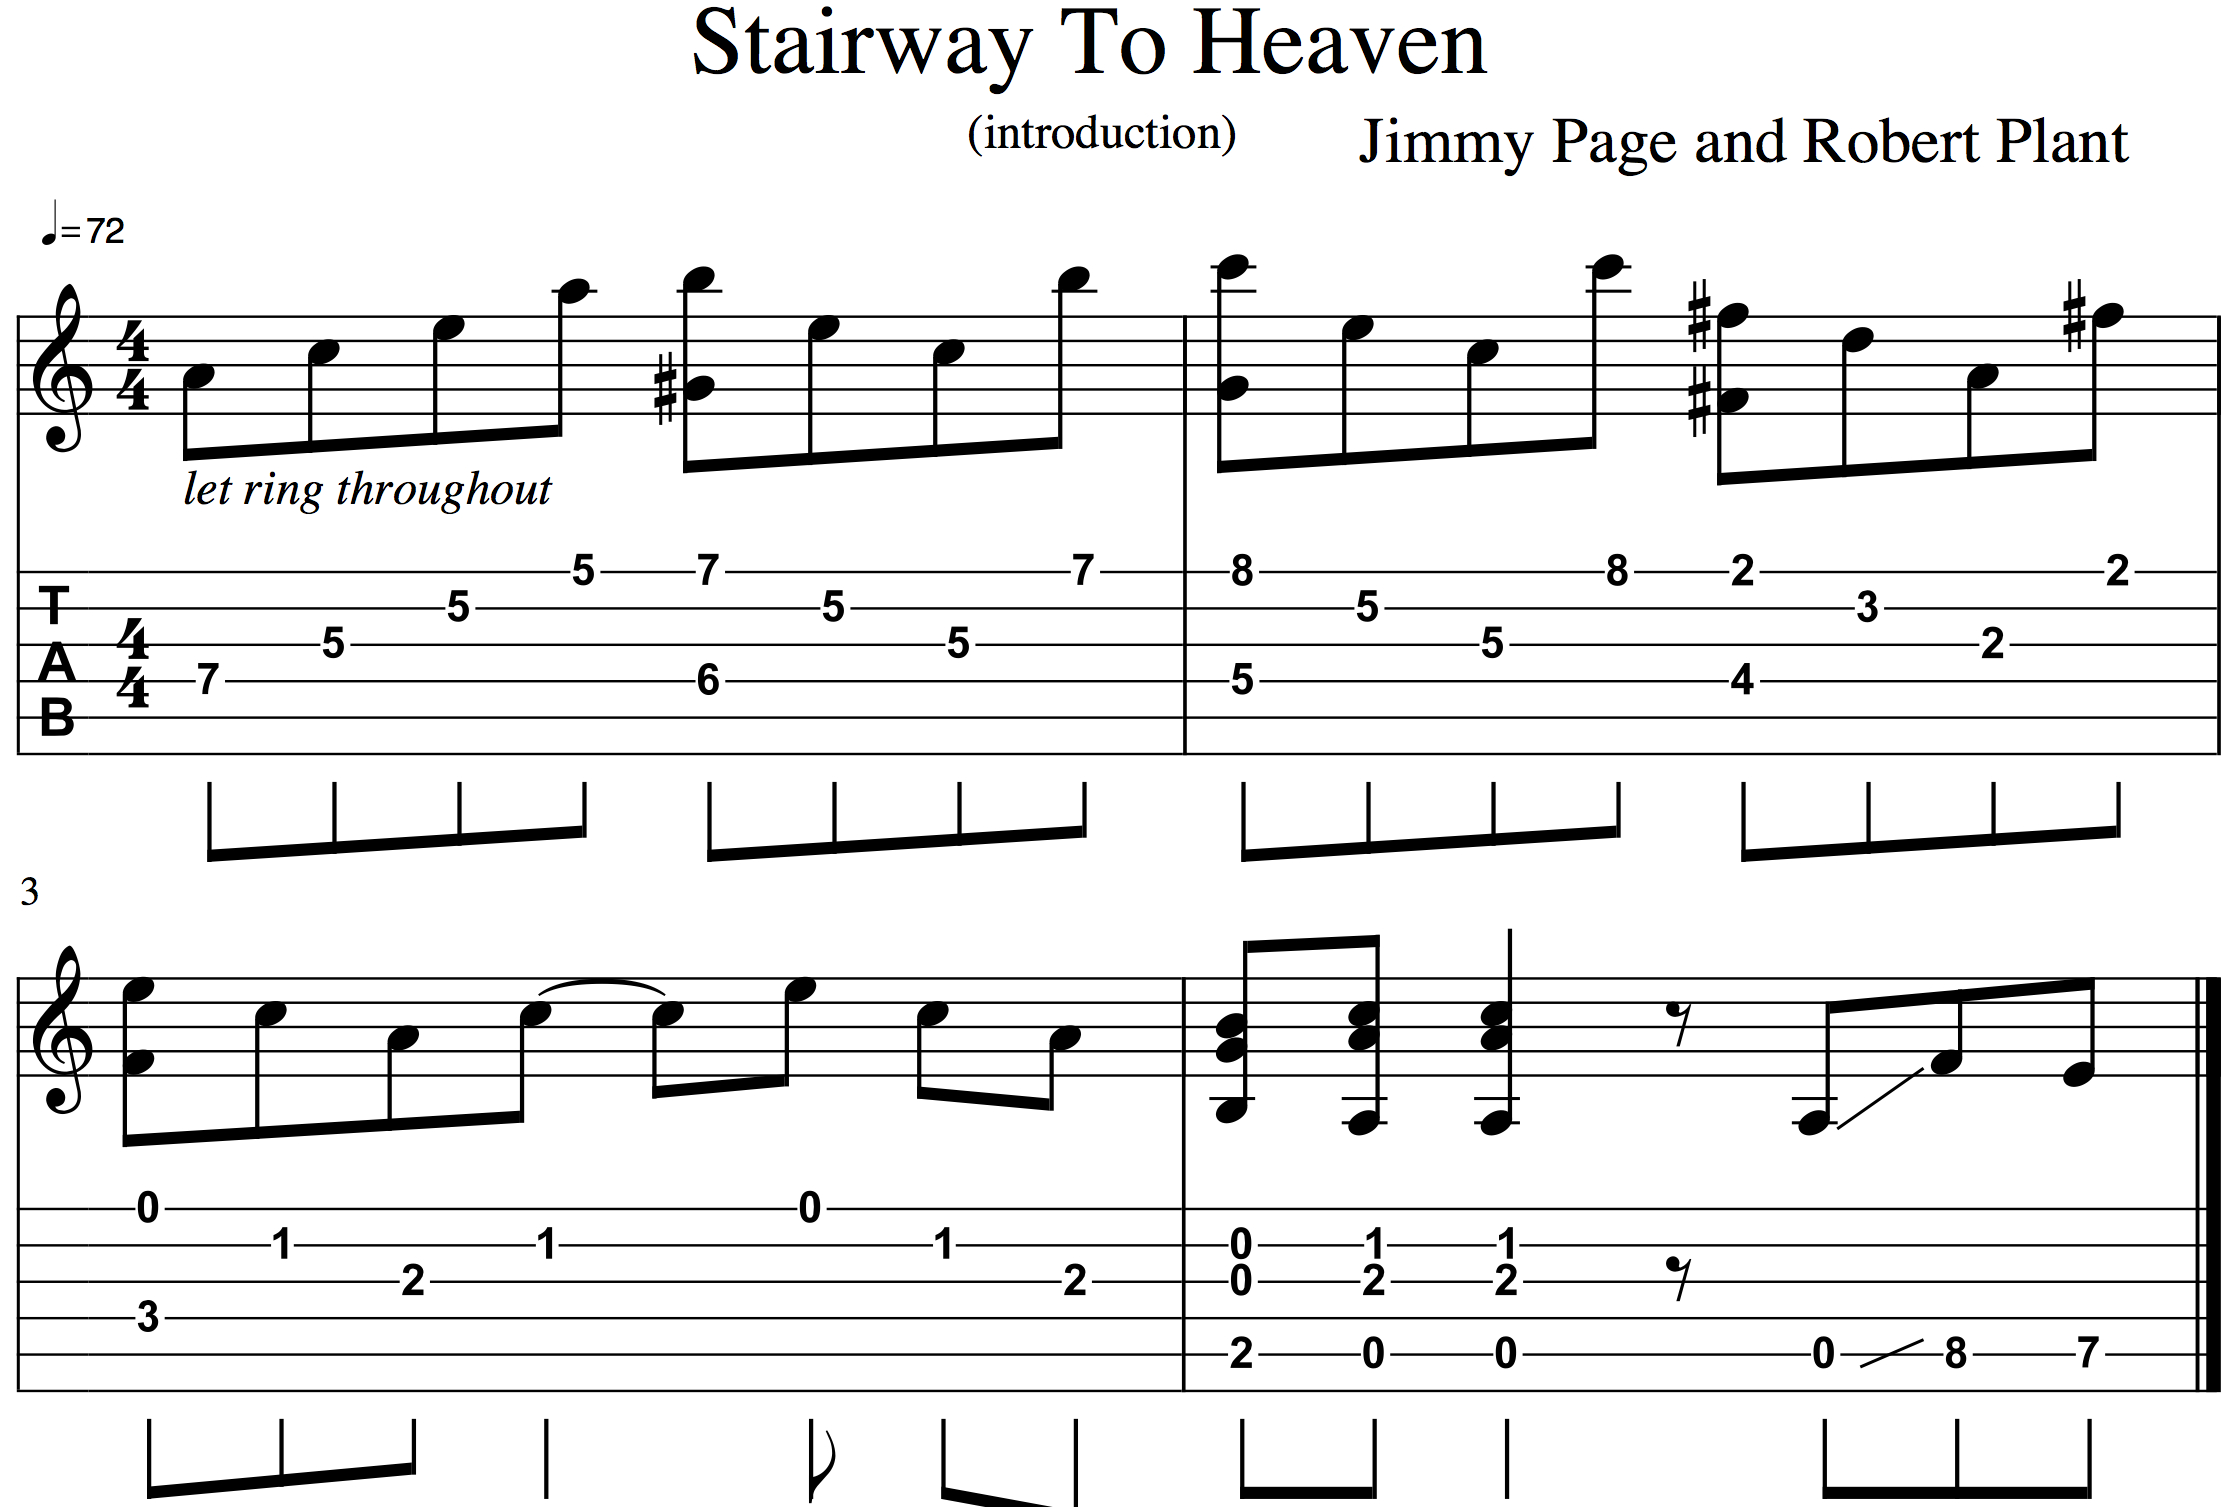 Stairway To Heaven Chords What Exactly Did Stairway To Heaven Copy From Taurus Joe Bennett